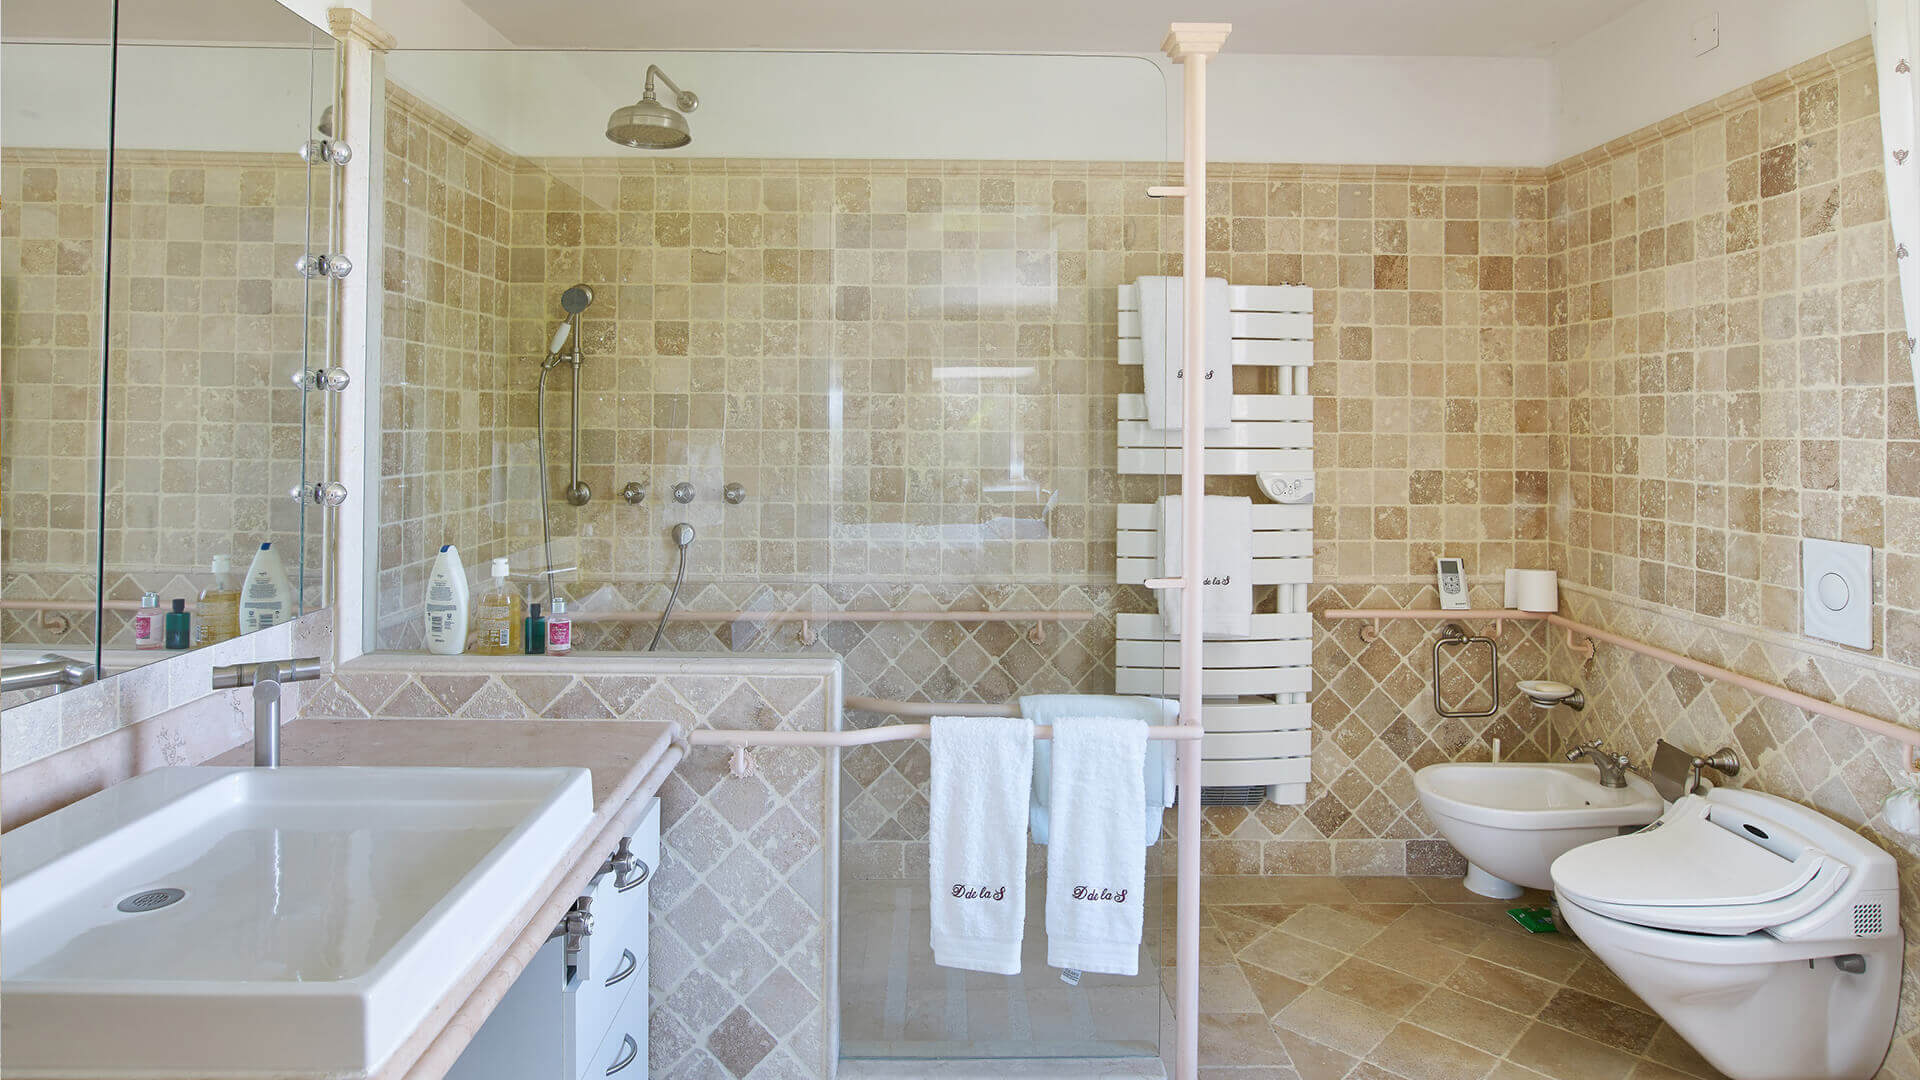 Large Domain Valbonne tiled bathroom with large shower niche